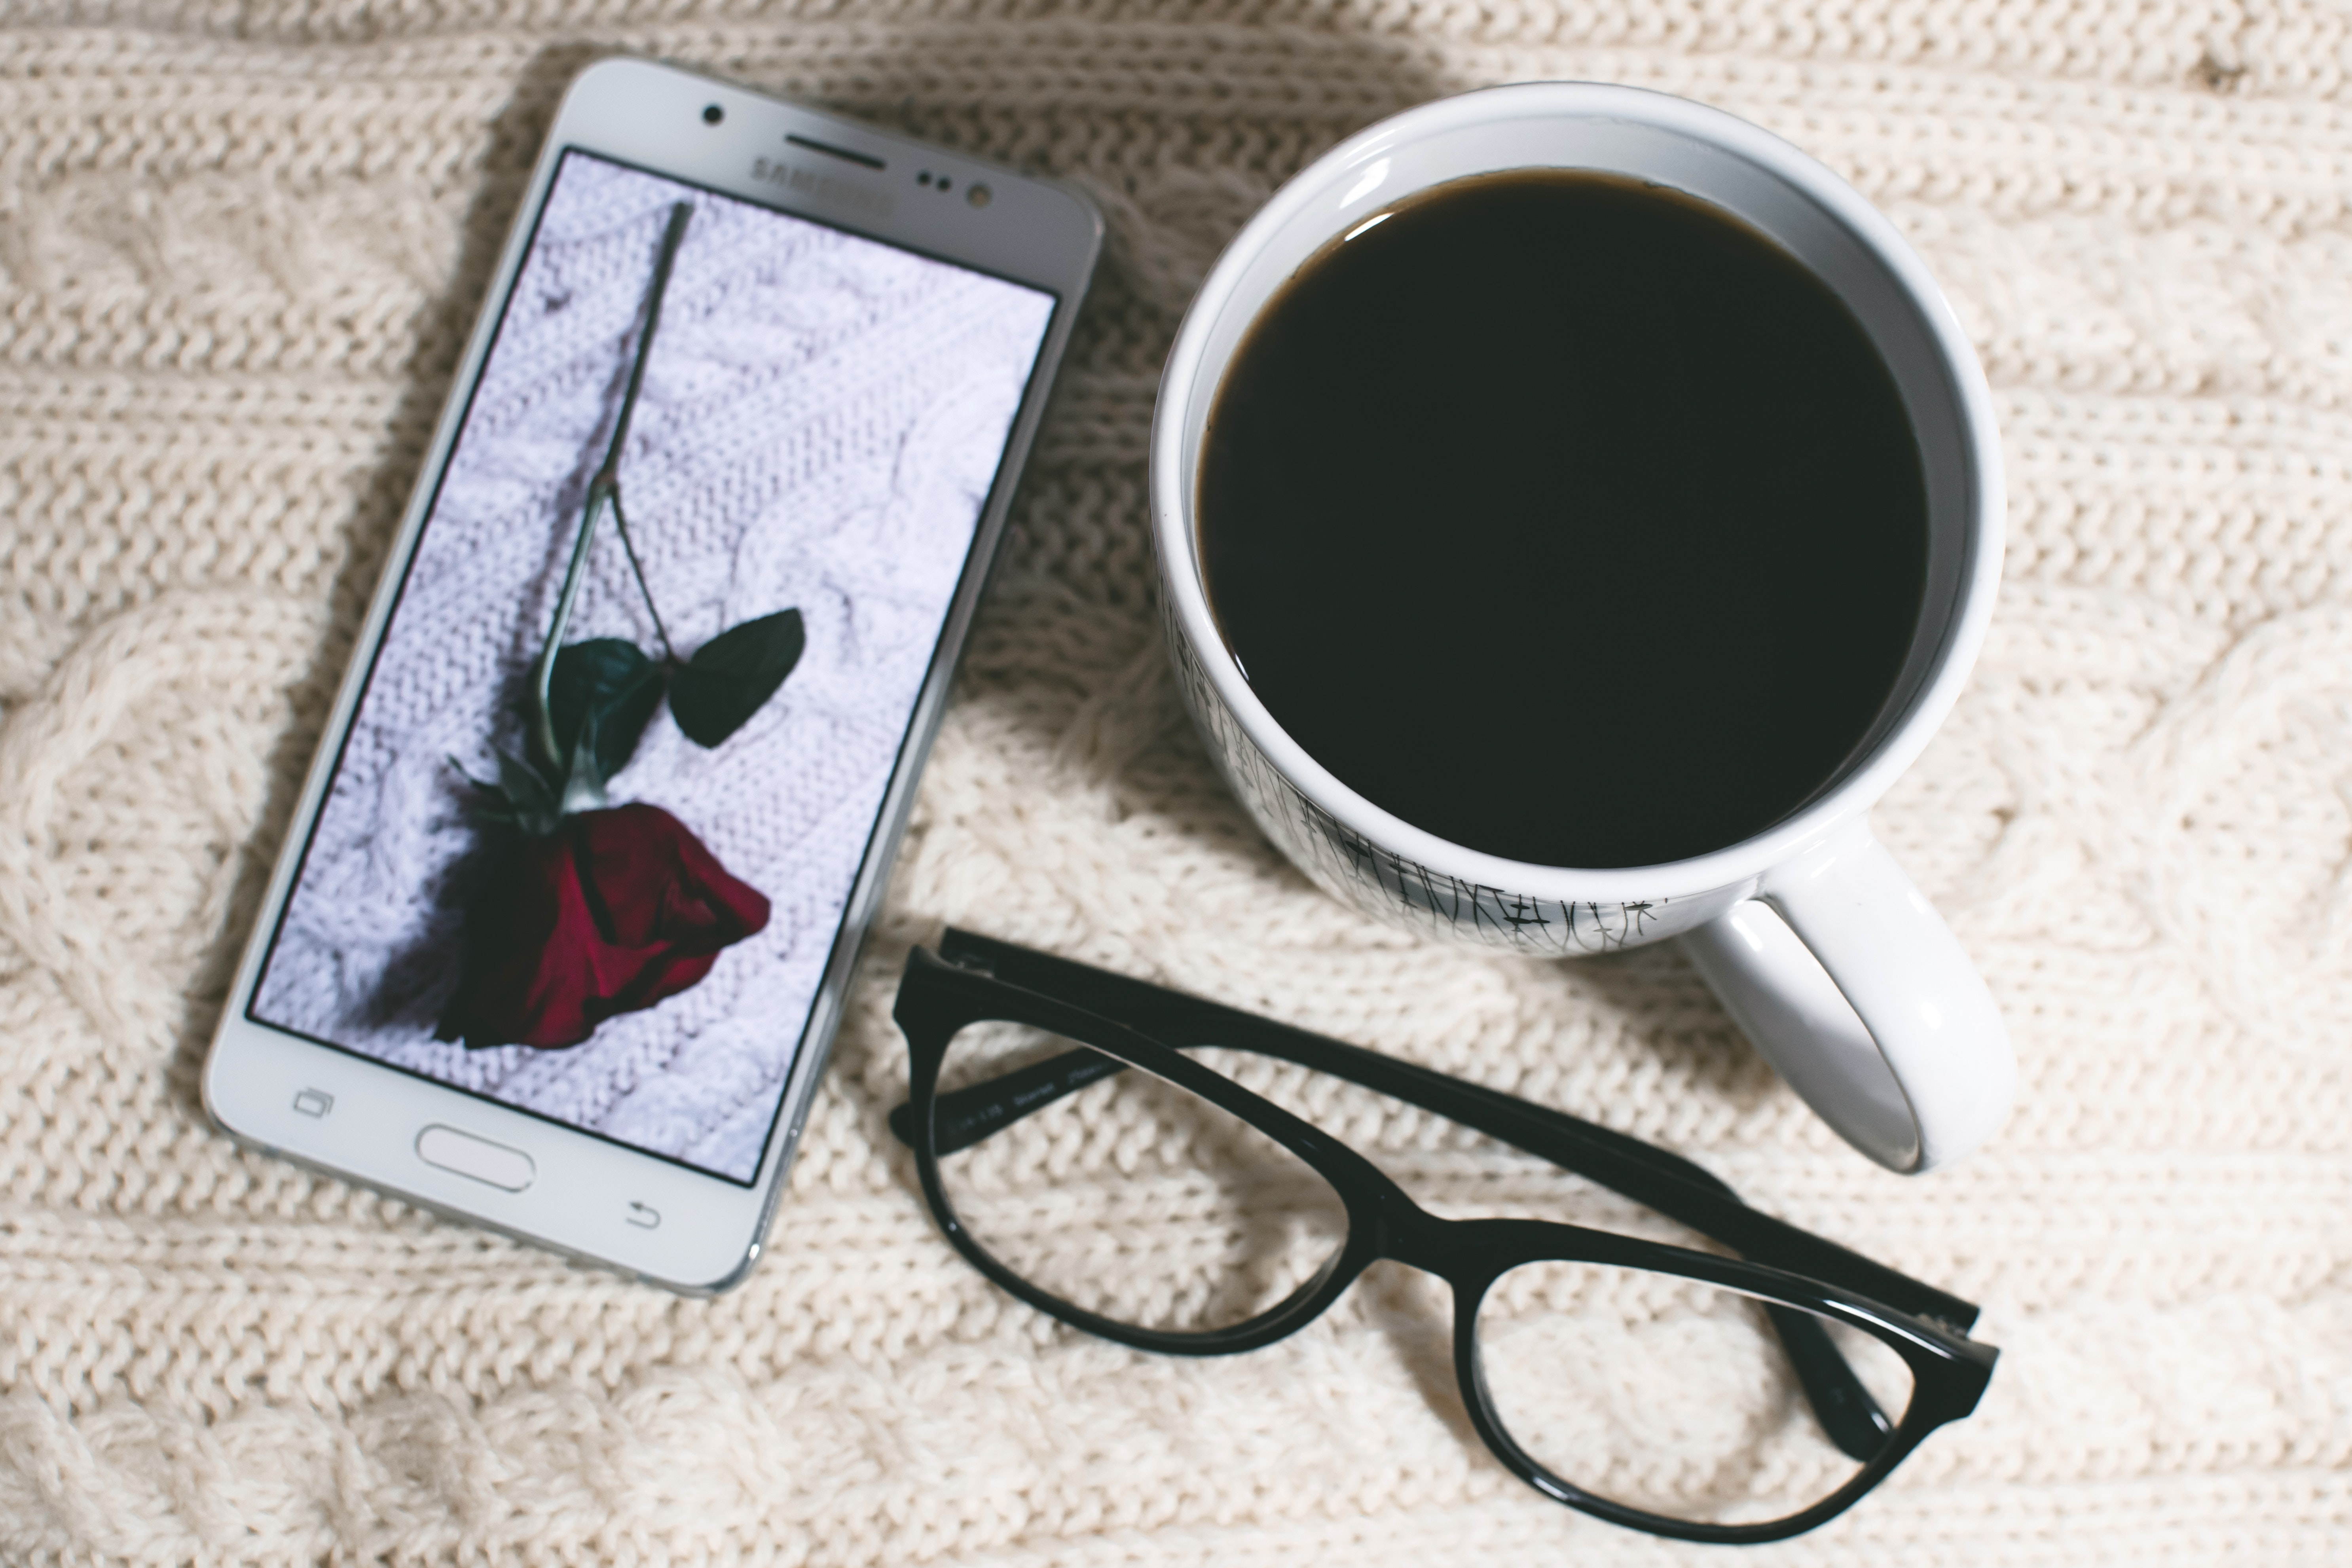 Phone Near Mug and Eyeglasses on Table, Phone, Mobile phone, Mug, Rose, HQ Photo